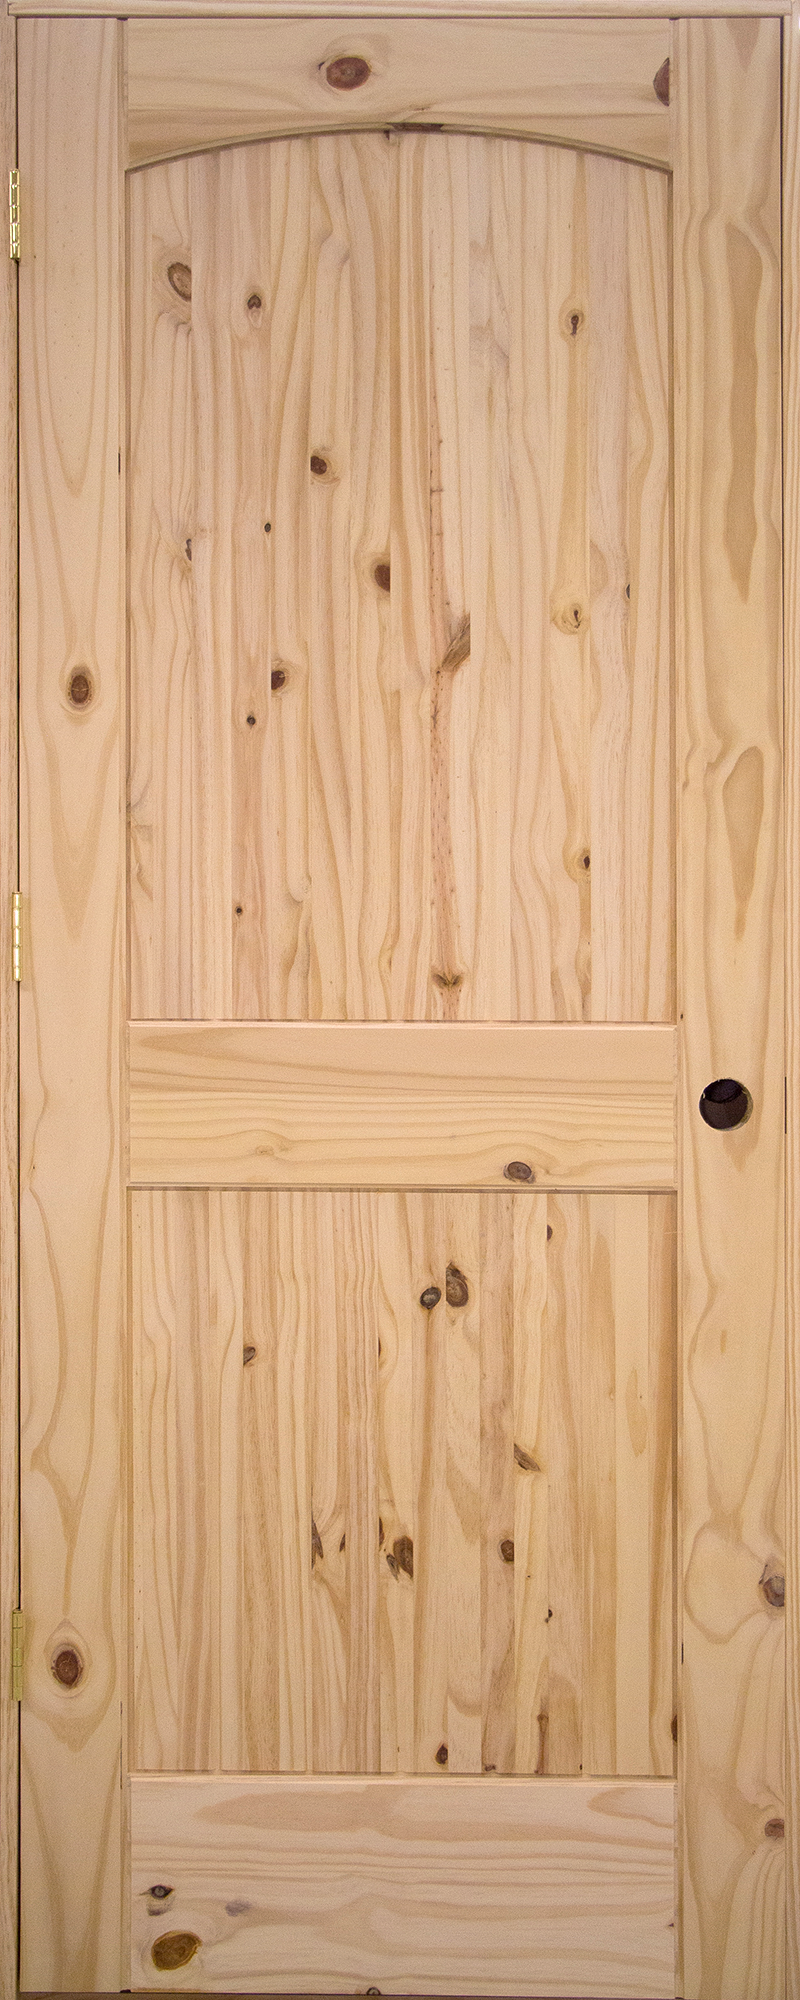 Knotty Pine 2-Panel Arch.png